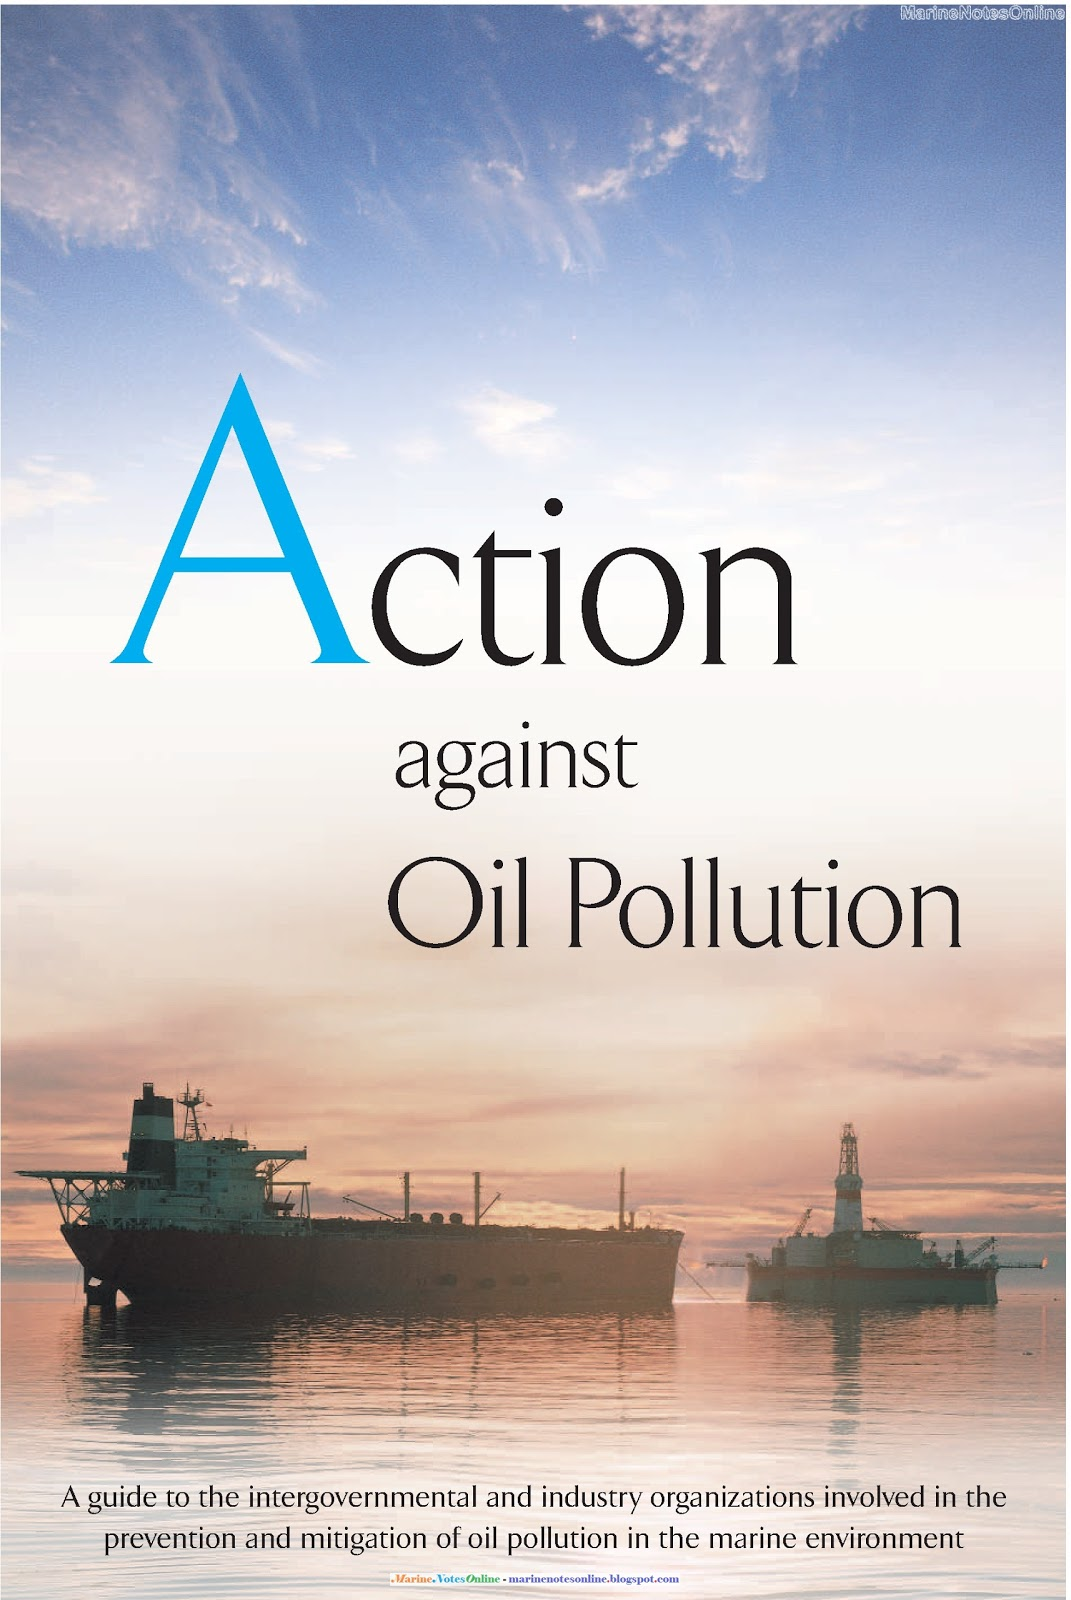 a brief note on marine pollution and Anthropogenic impact in the sea and marine pollution  by stanislav patin, translation by elena cascio based on environmental impact of the offshore oil and gas industry below you will find a brief introduction to the problem of anthropogenic impact in the sea and marine pollution.